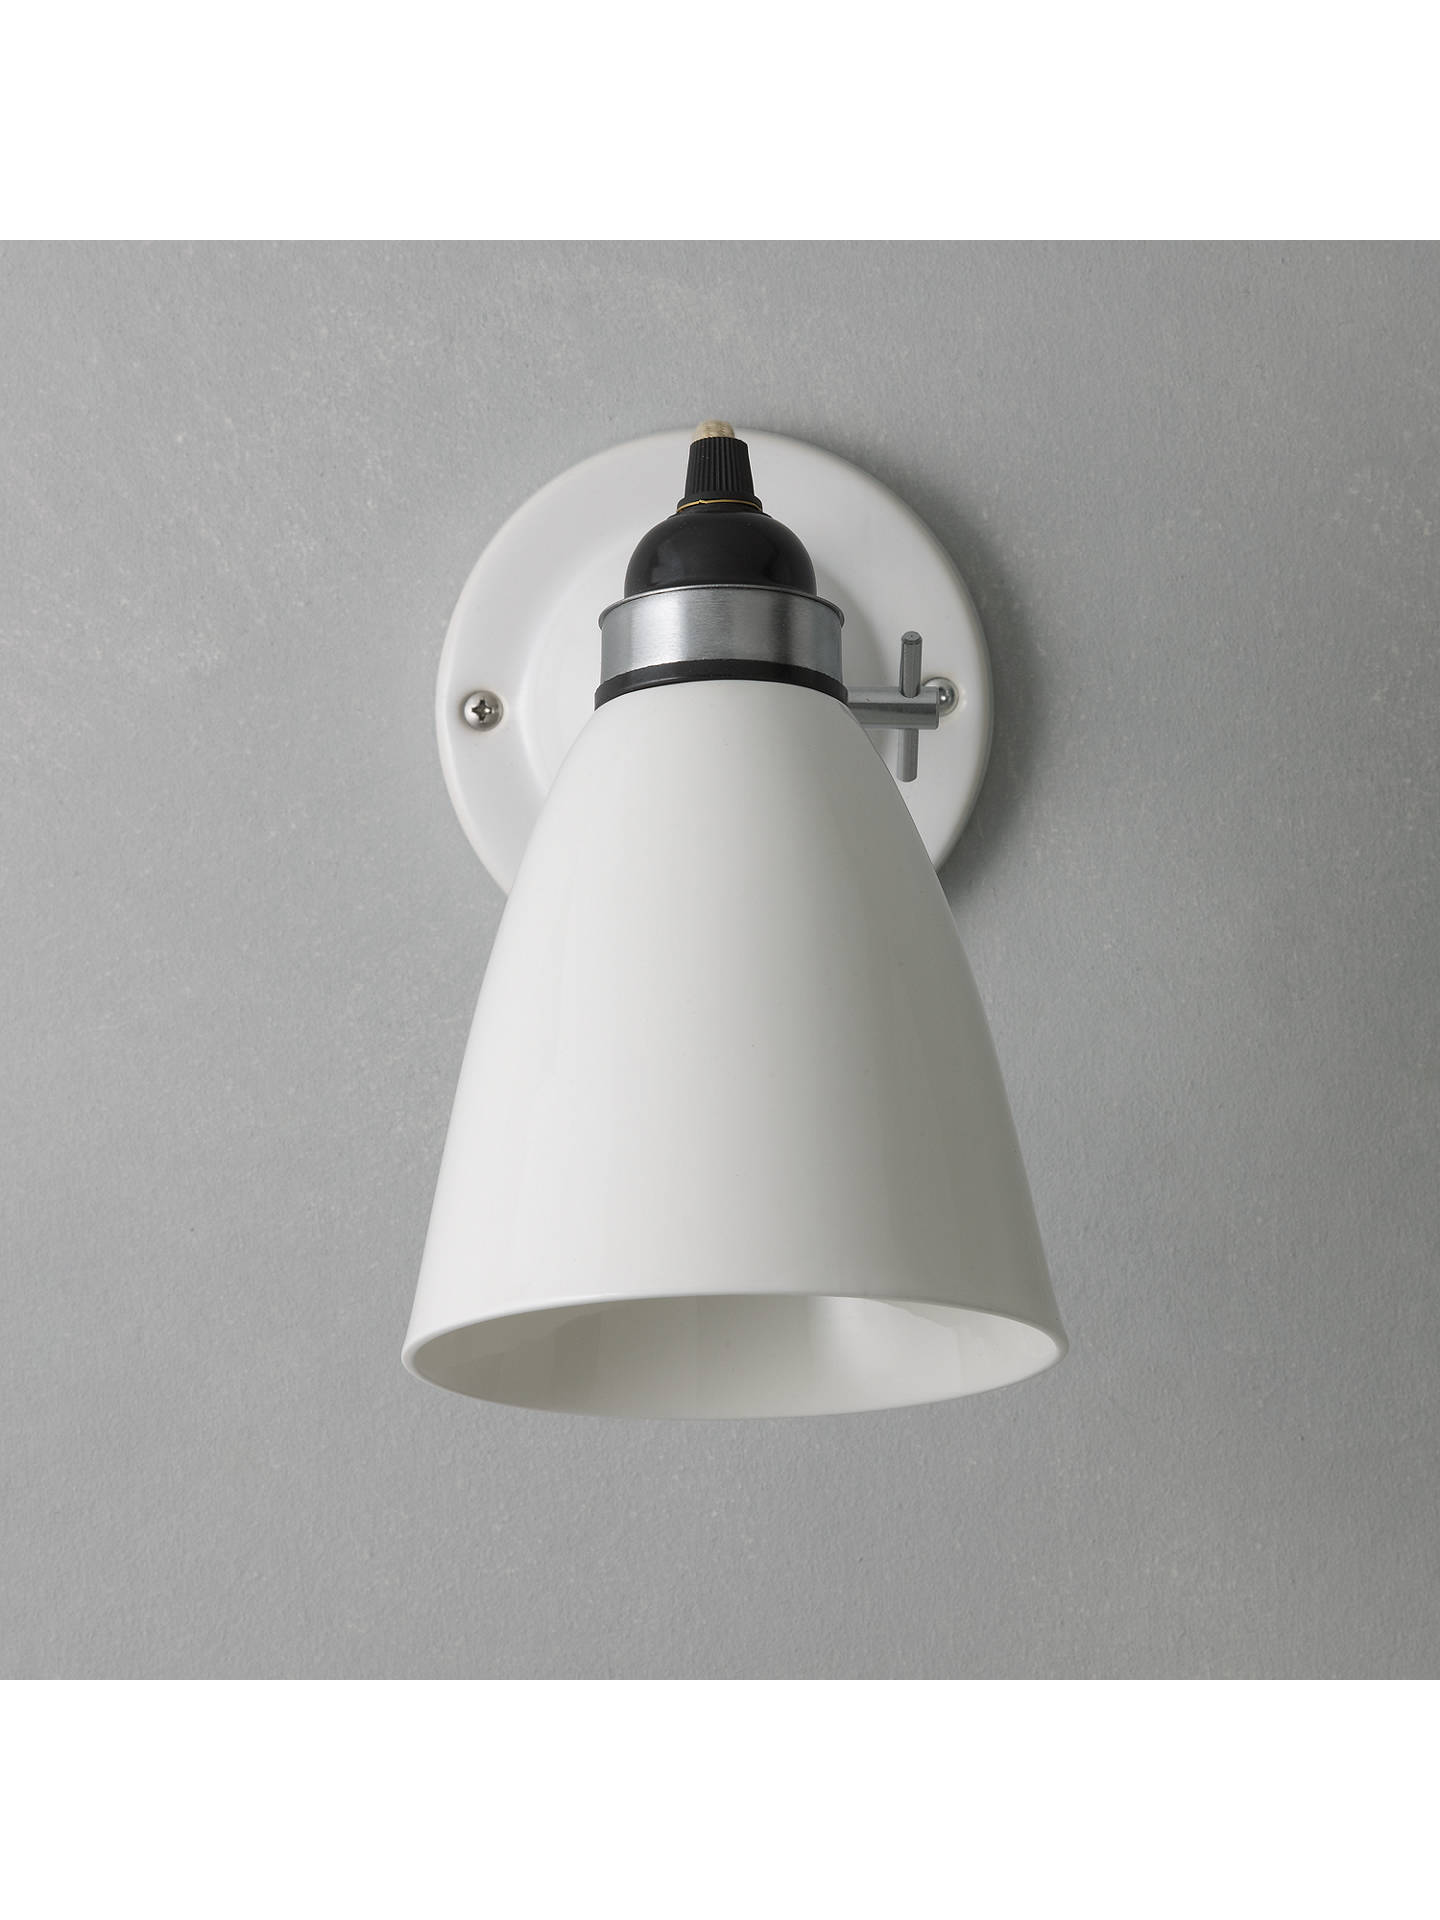 Original Btc Hector Dome Switched Wall Light At John Lewis